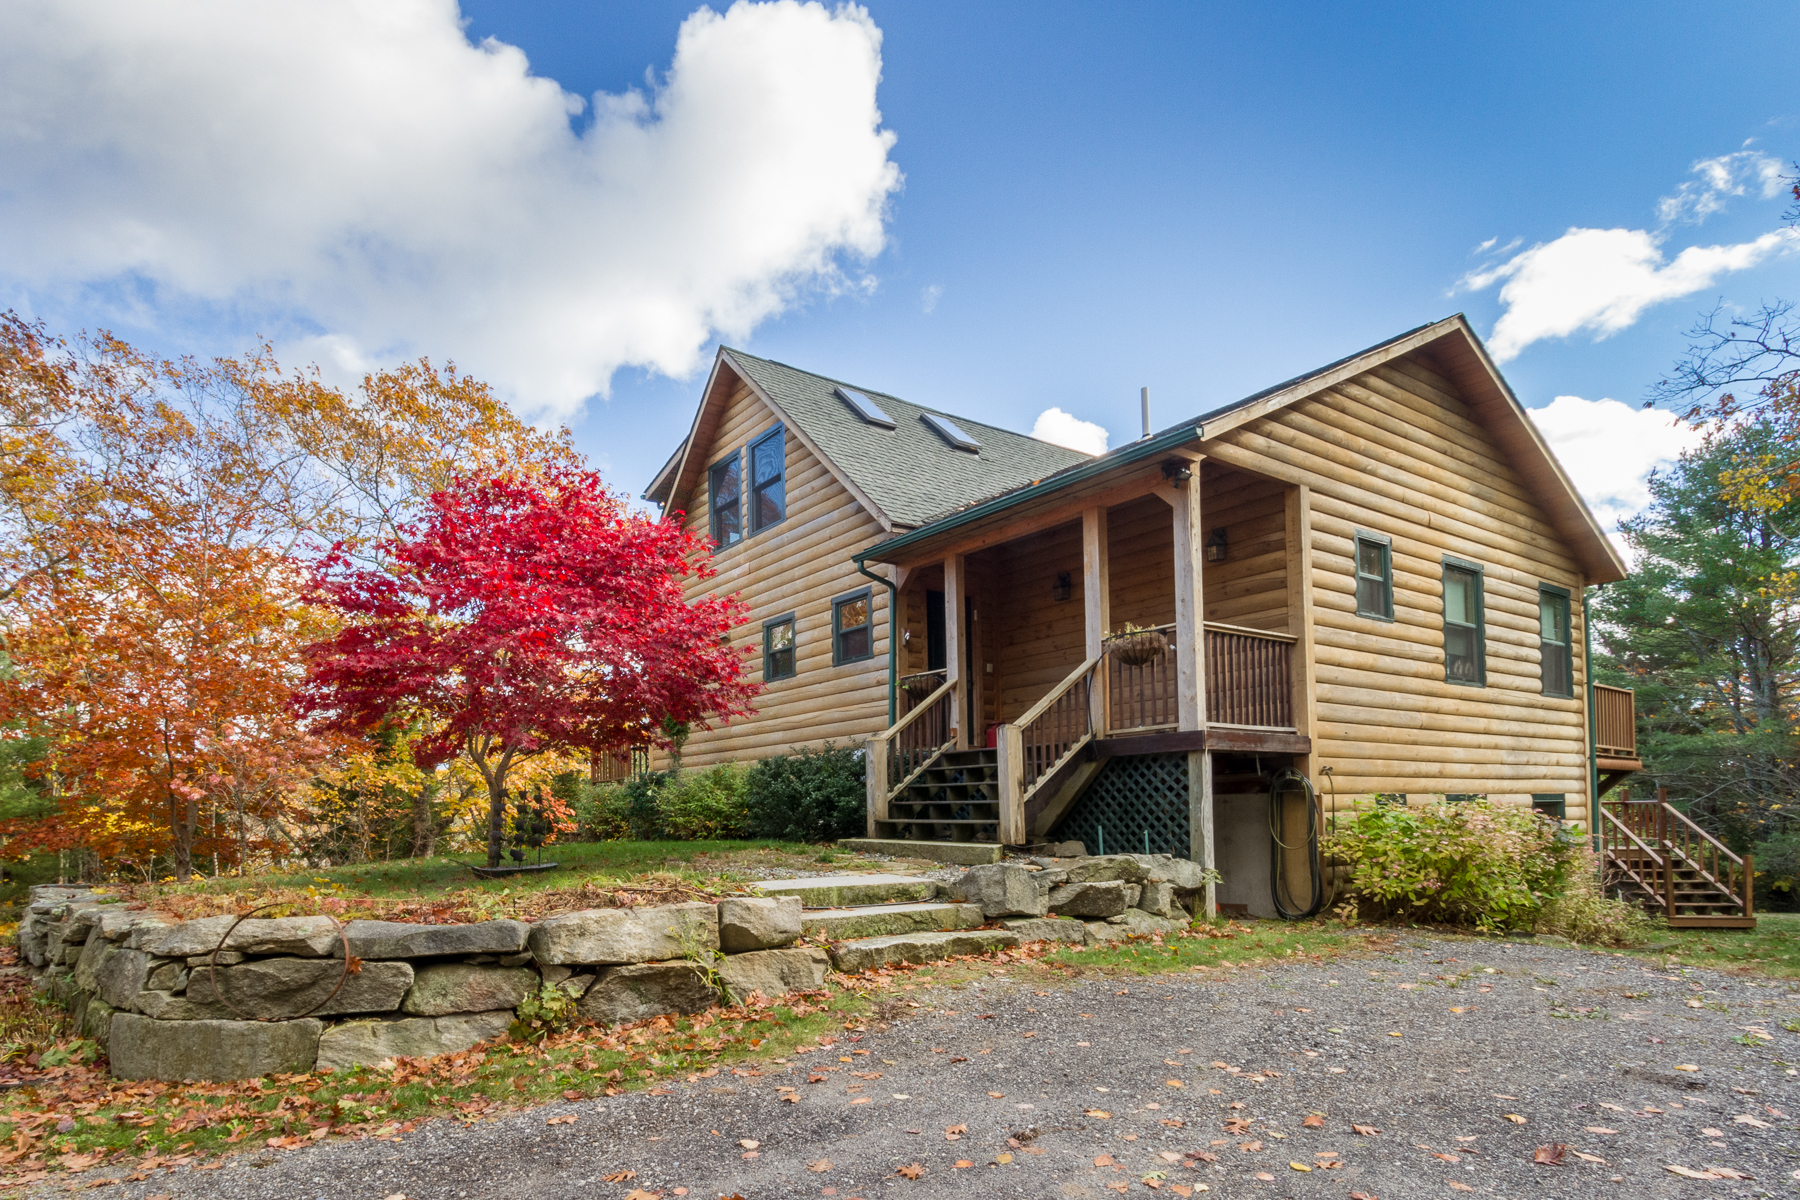 Single Family Home for Sale at 40 Middle Road, South Bristol South Bristol, Maine, 04568 United States